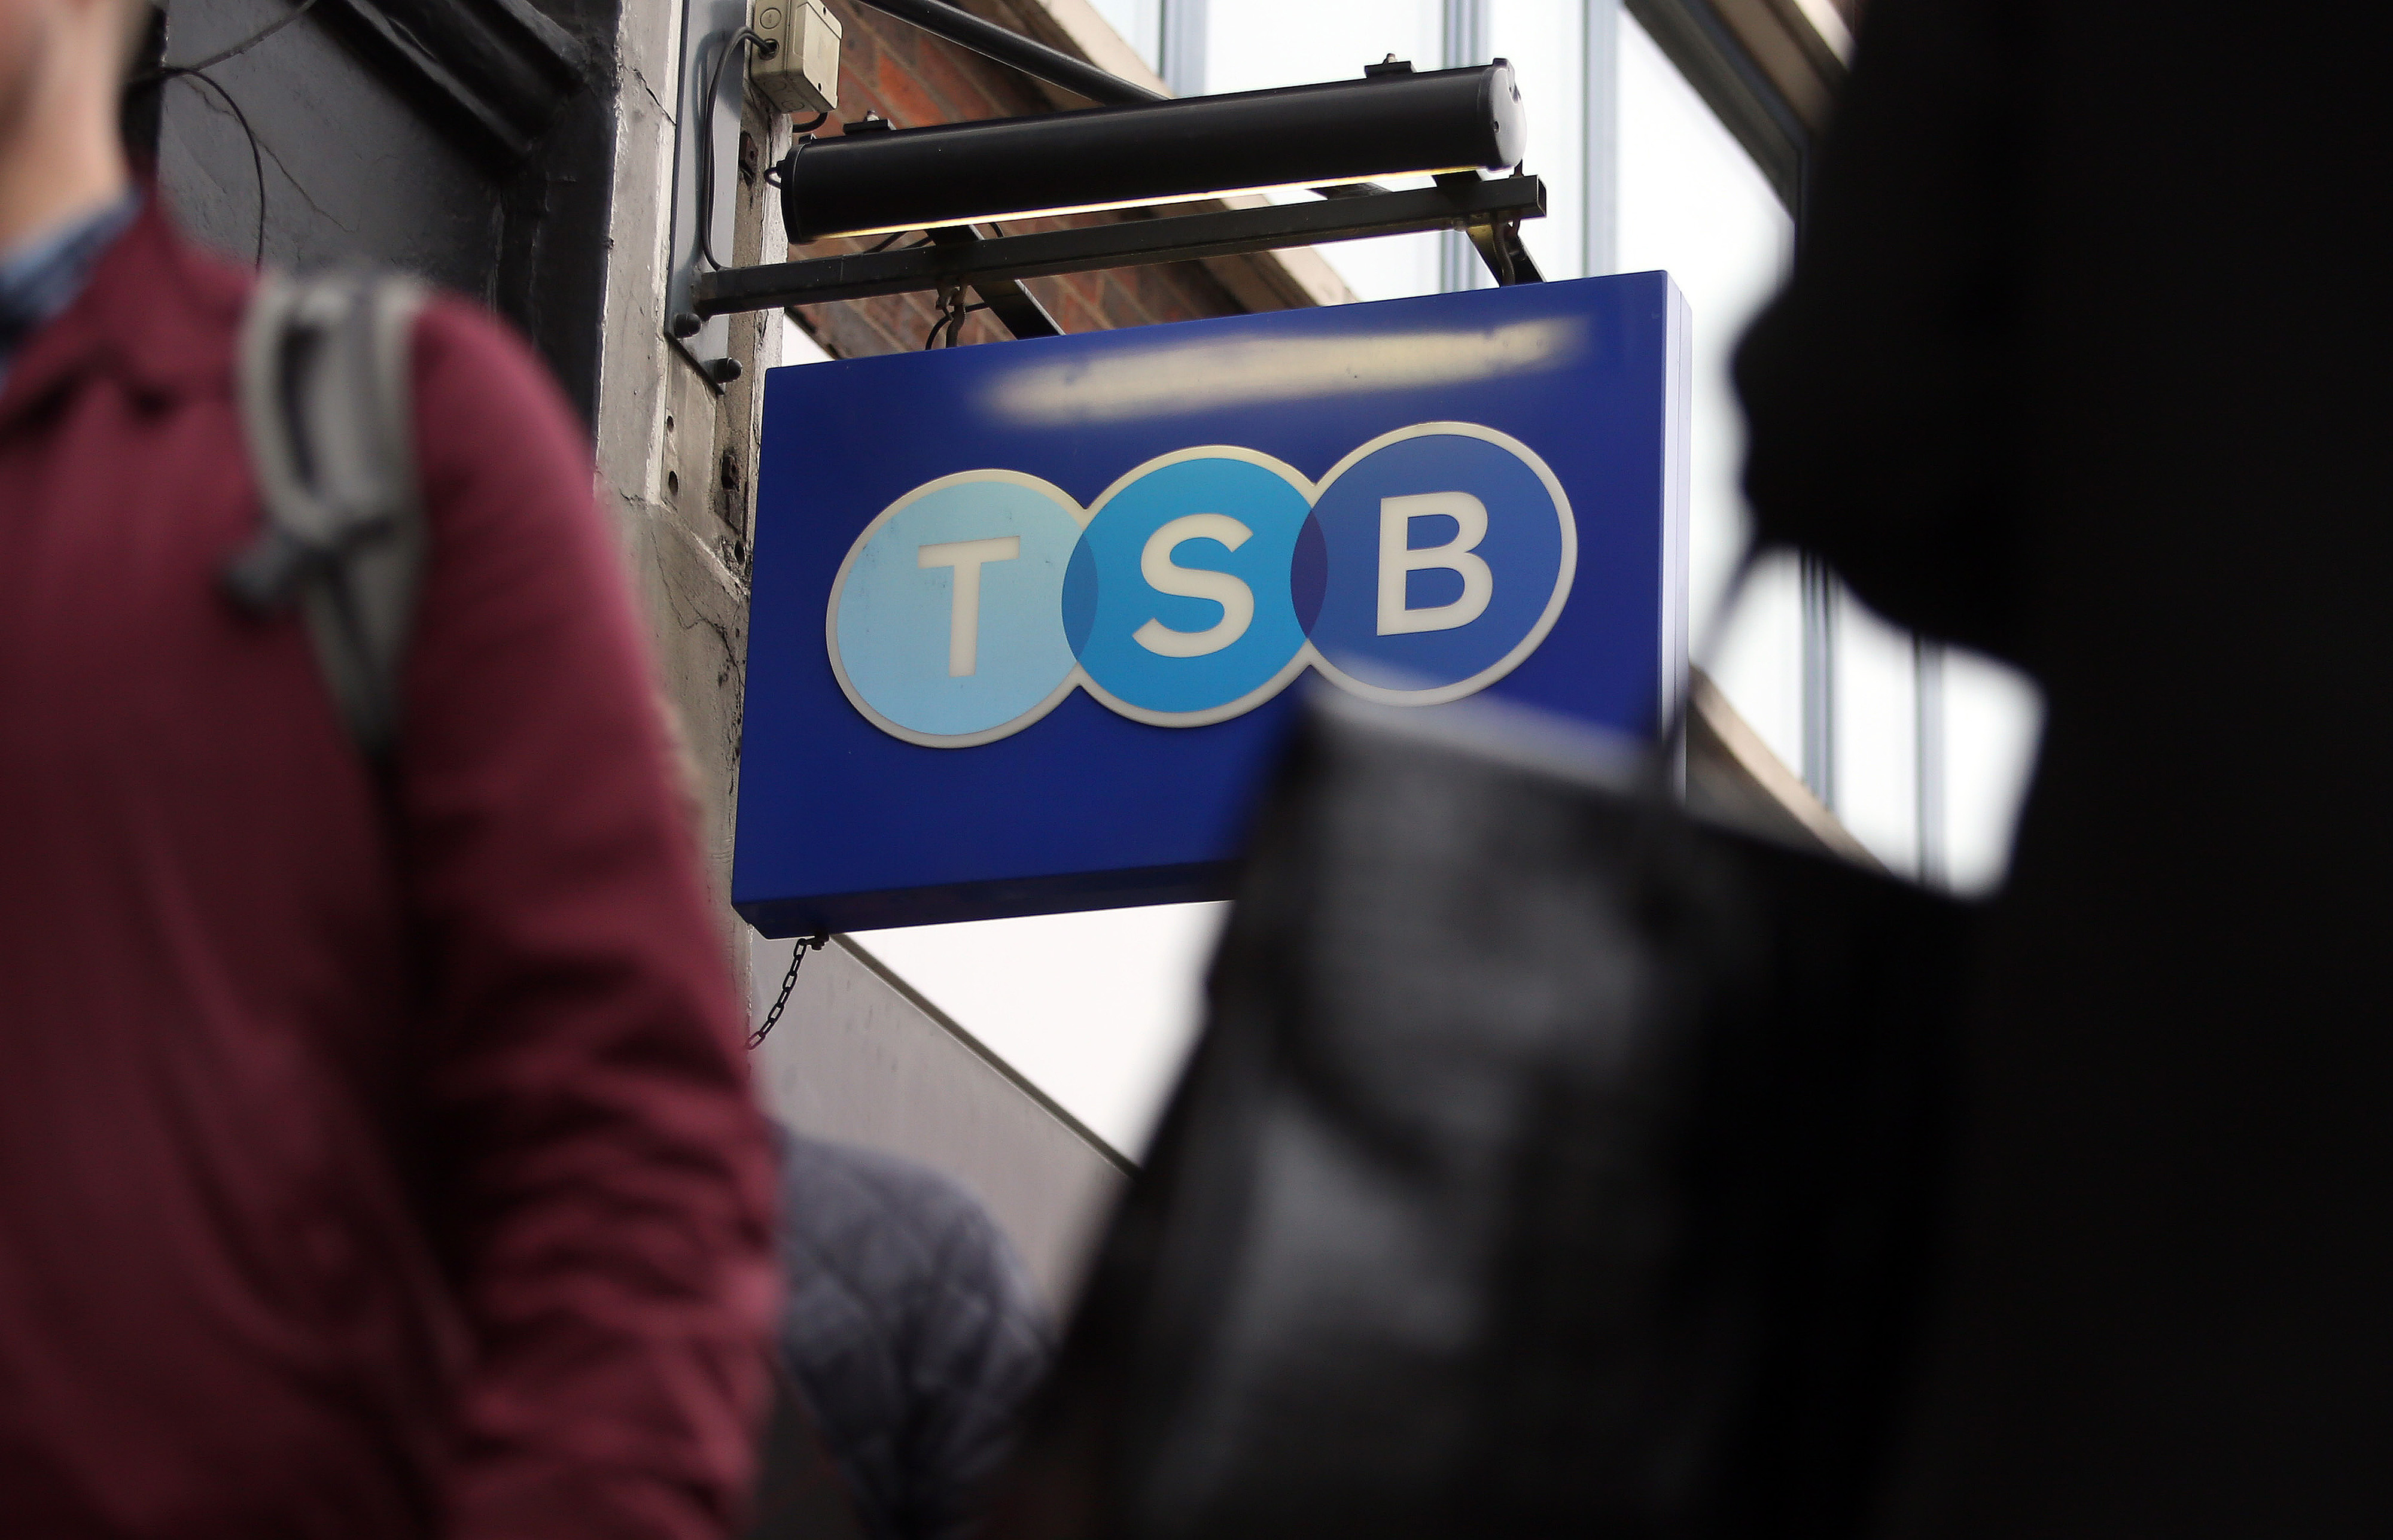 You can check TSB's service status on its website